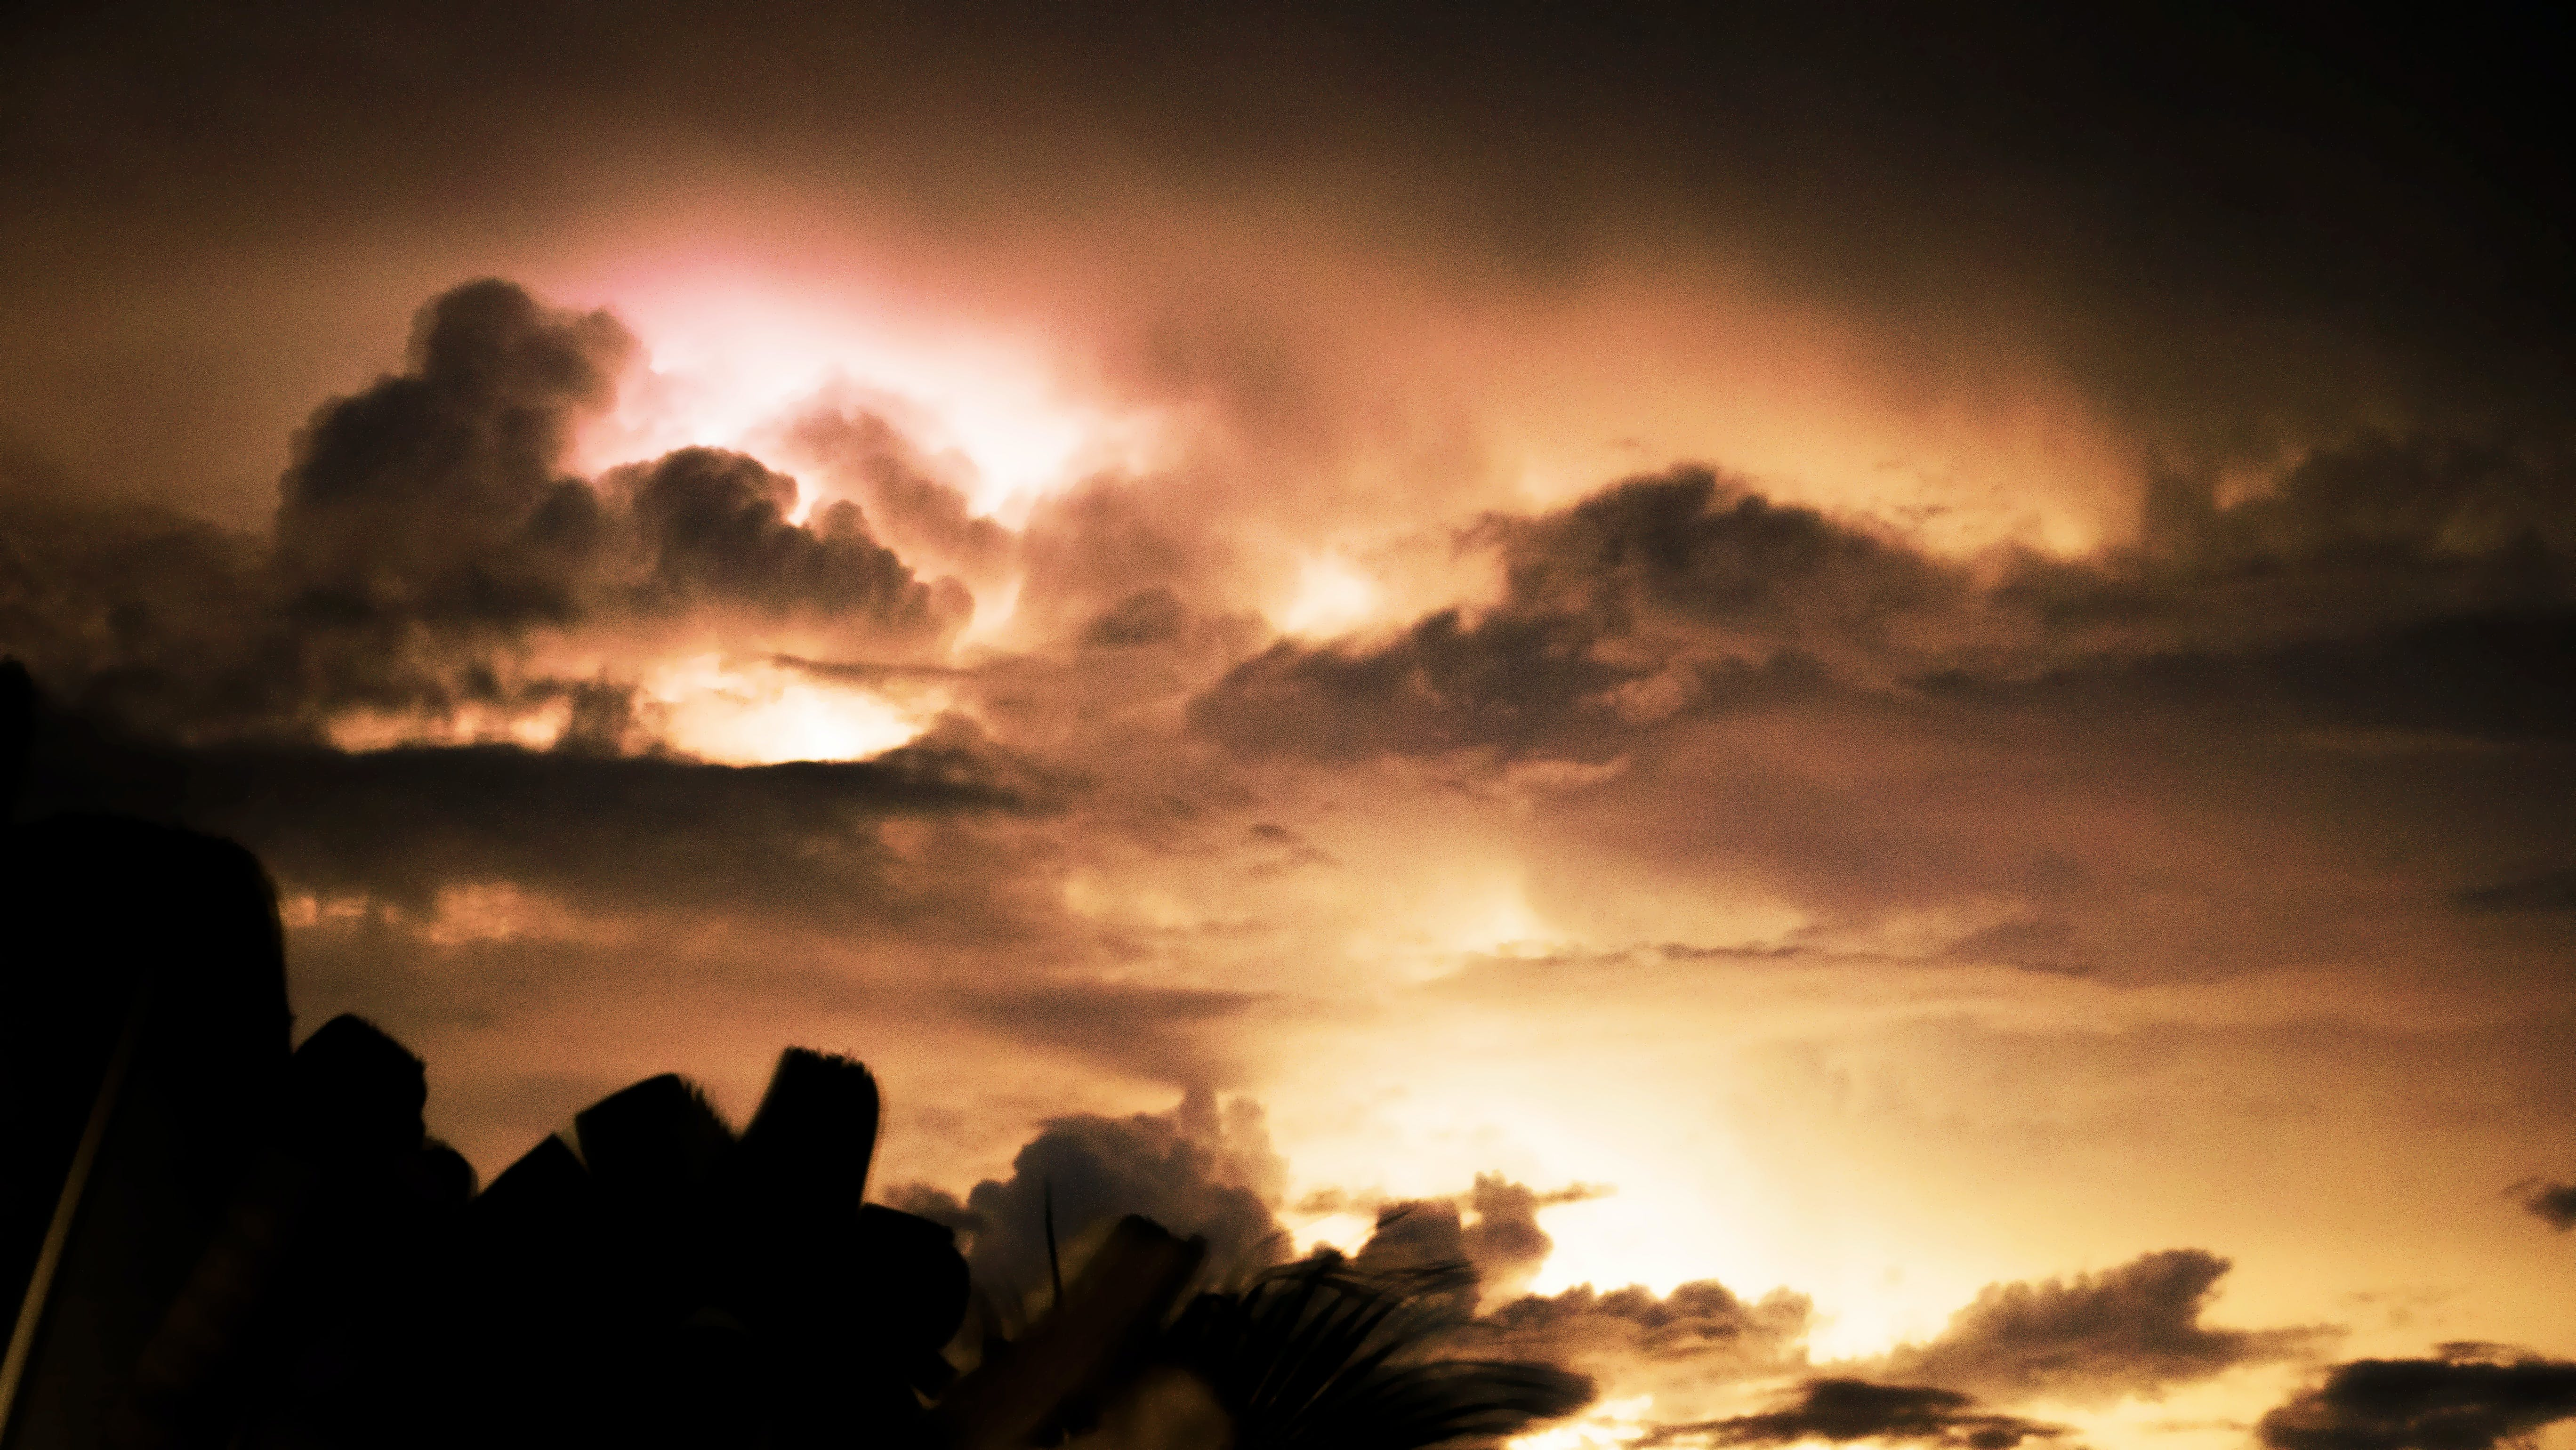 Free stock photo of bad weather, clouds, dark clouds, lightning